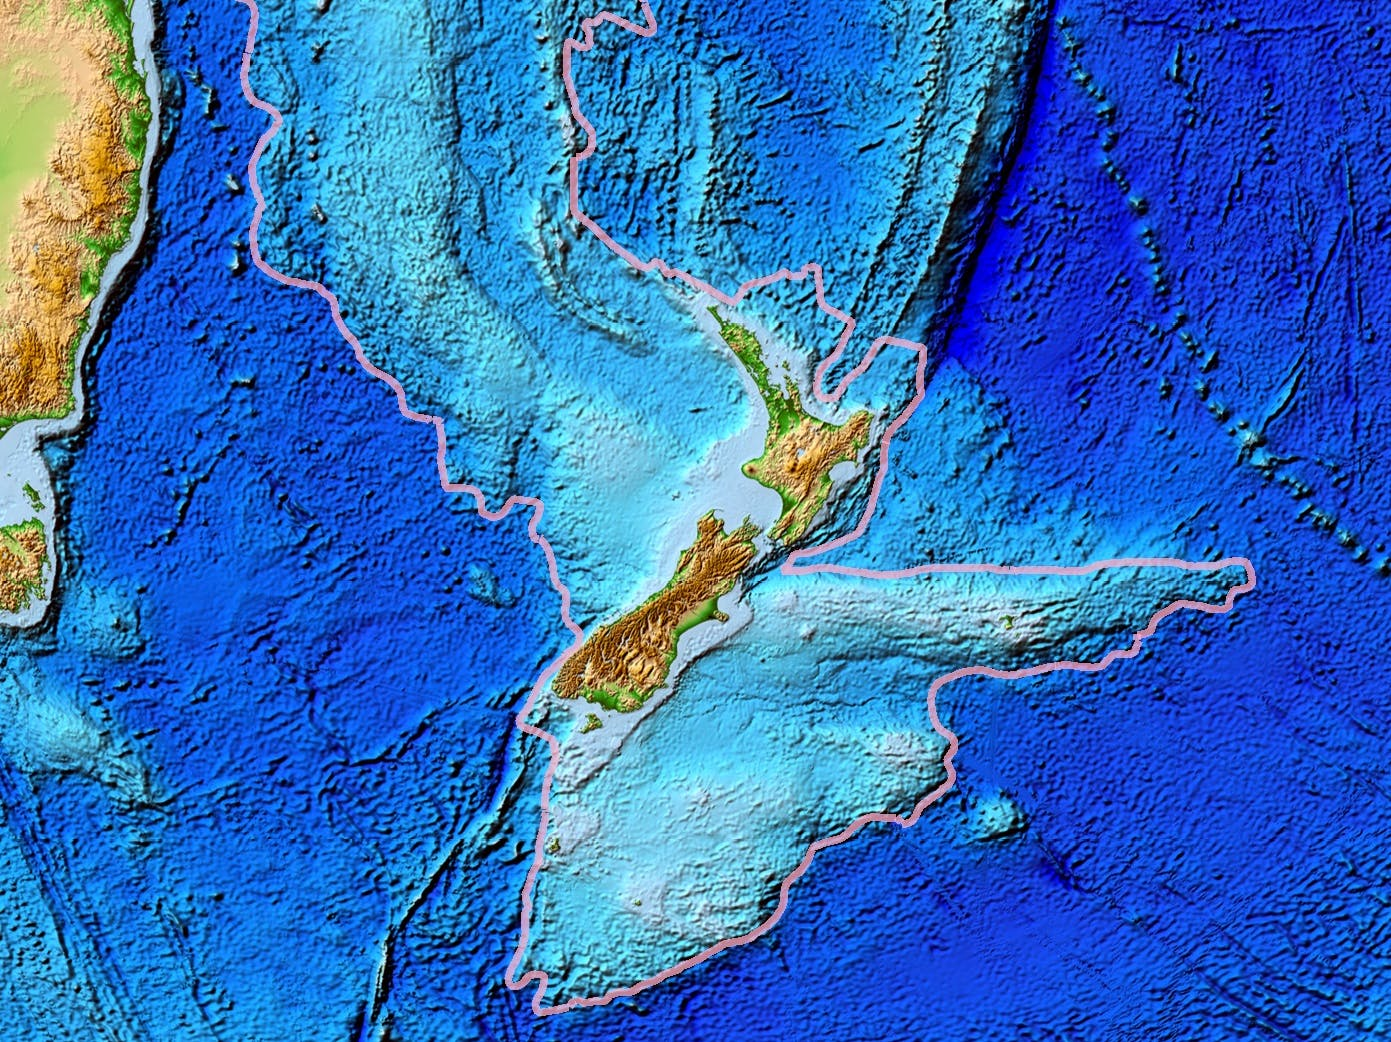 The Underwater Continent of Zealandia Could Predict Earth's Future